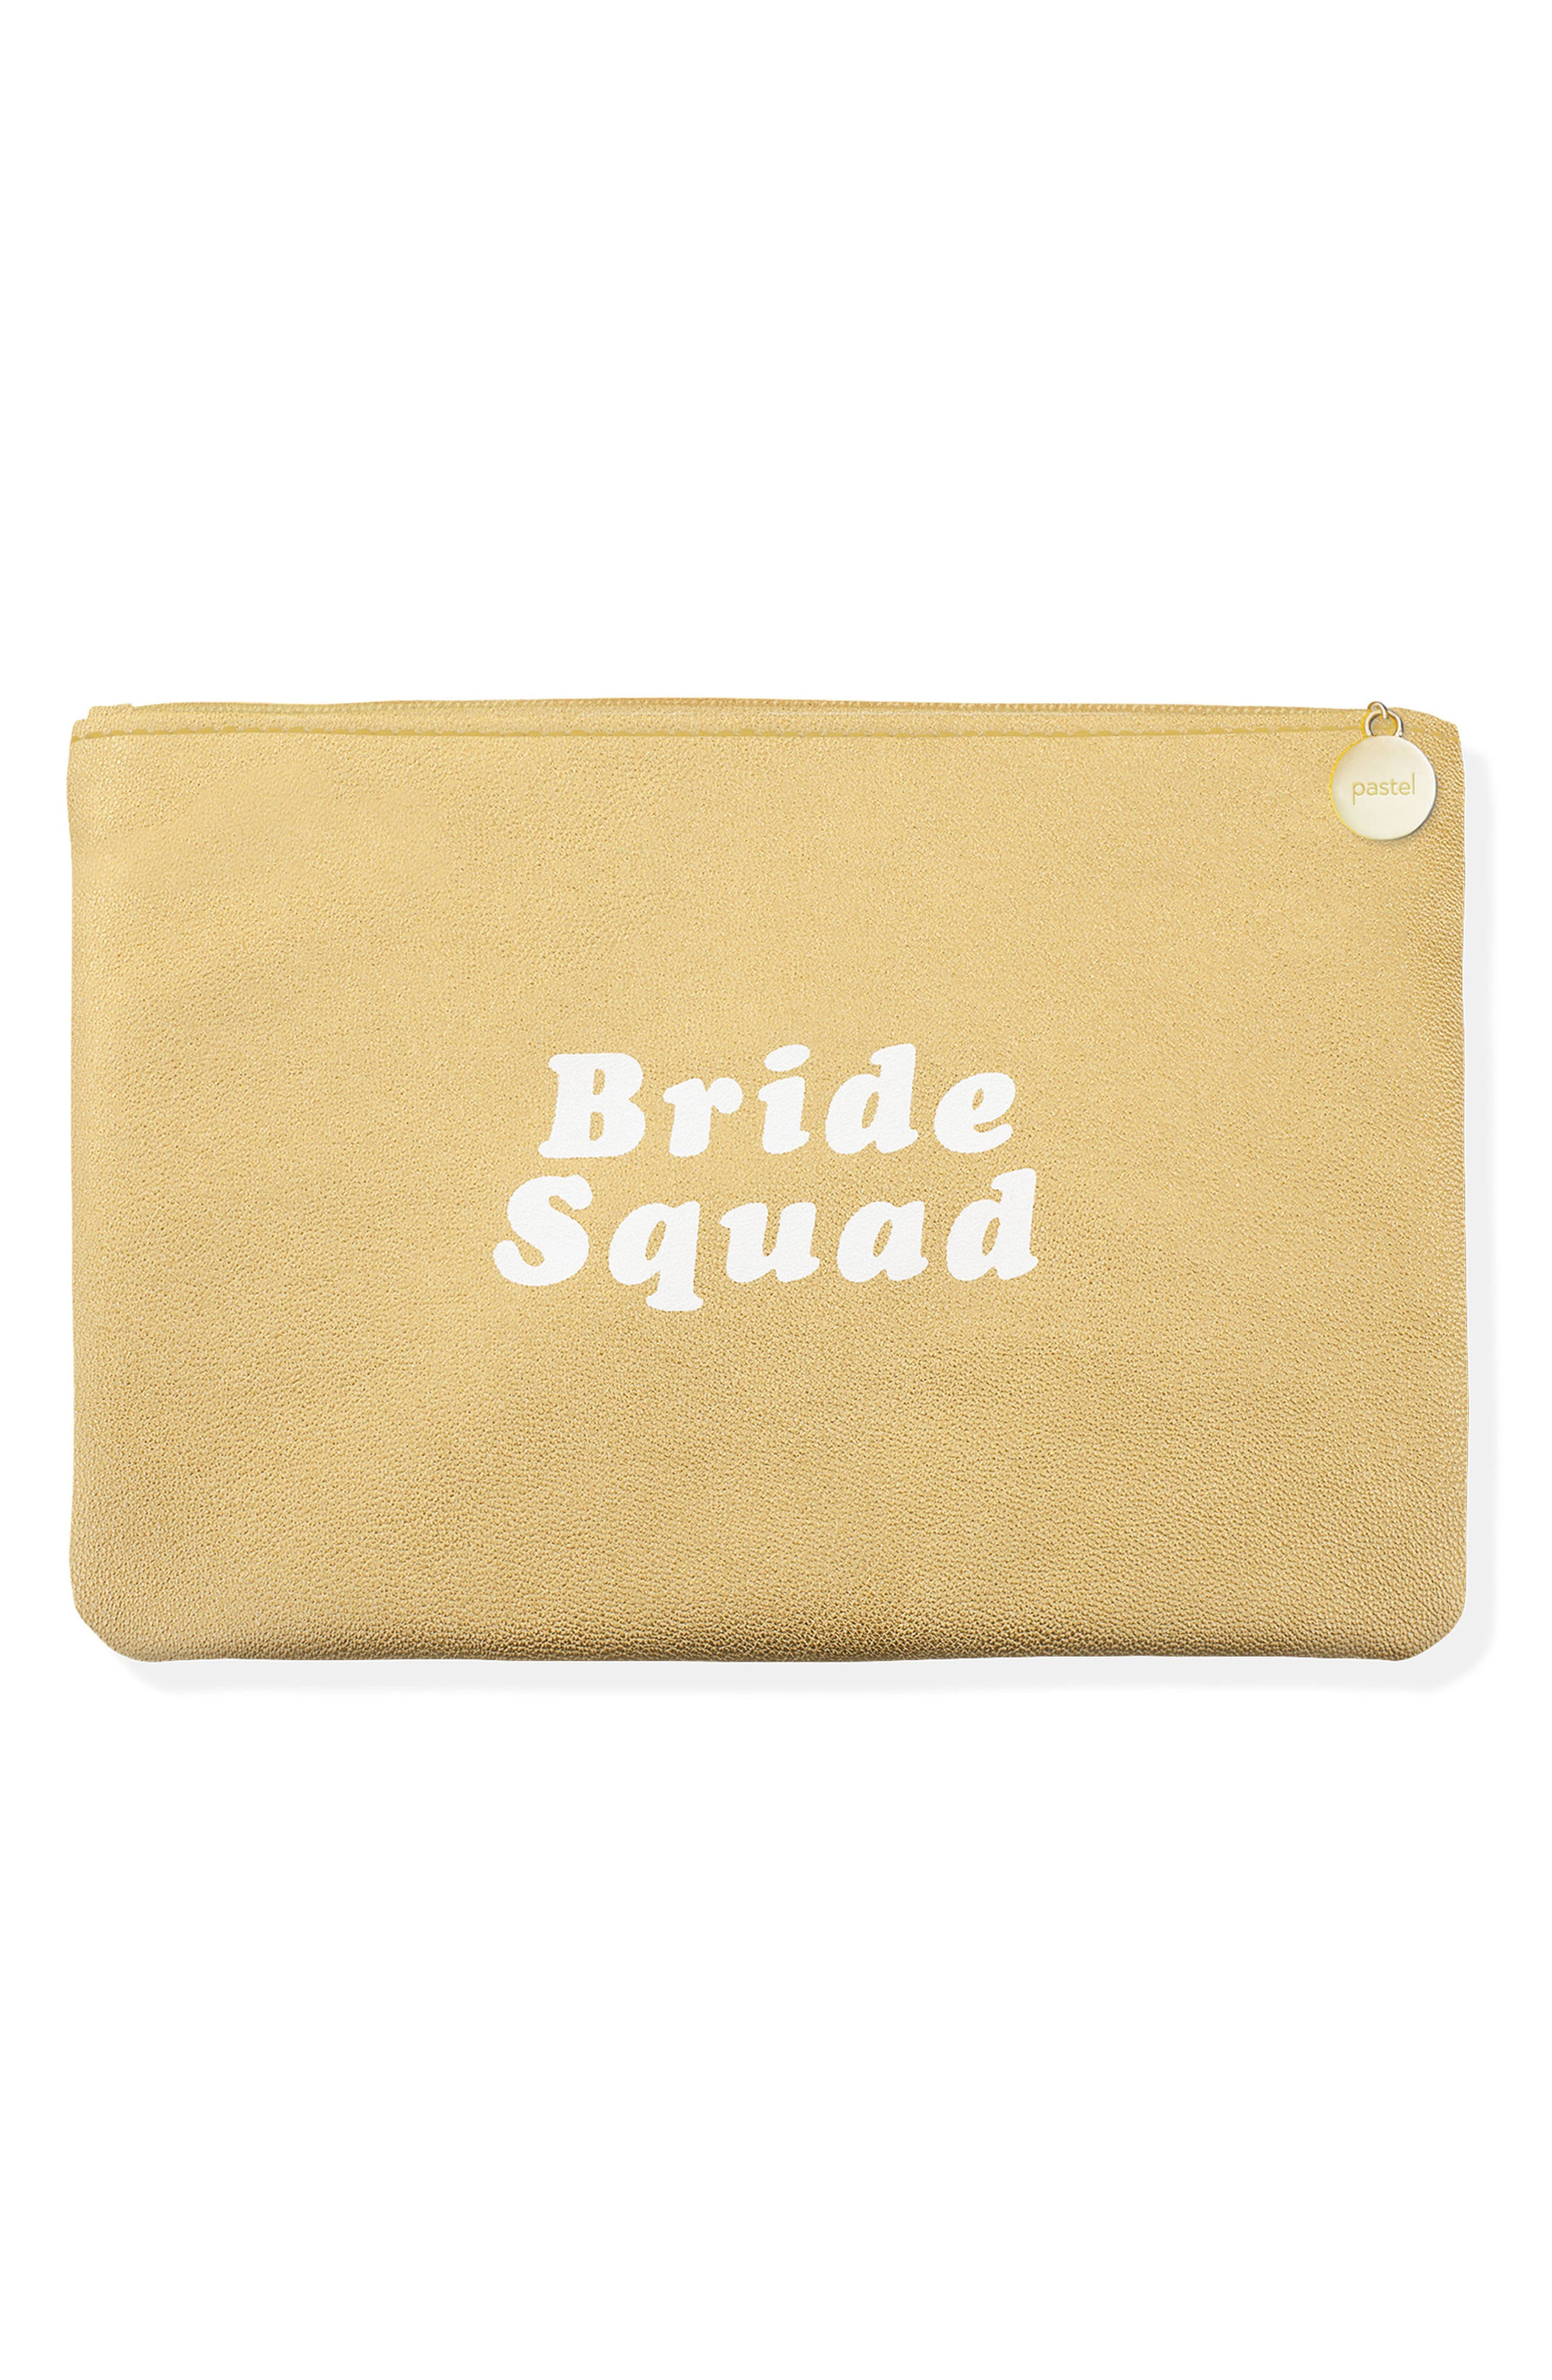 Bride Squad Zip Pouch,                         Main,                         color,